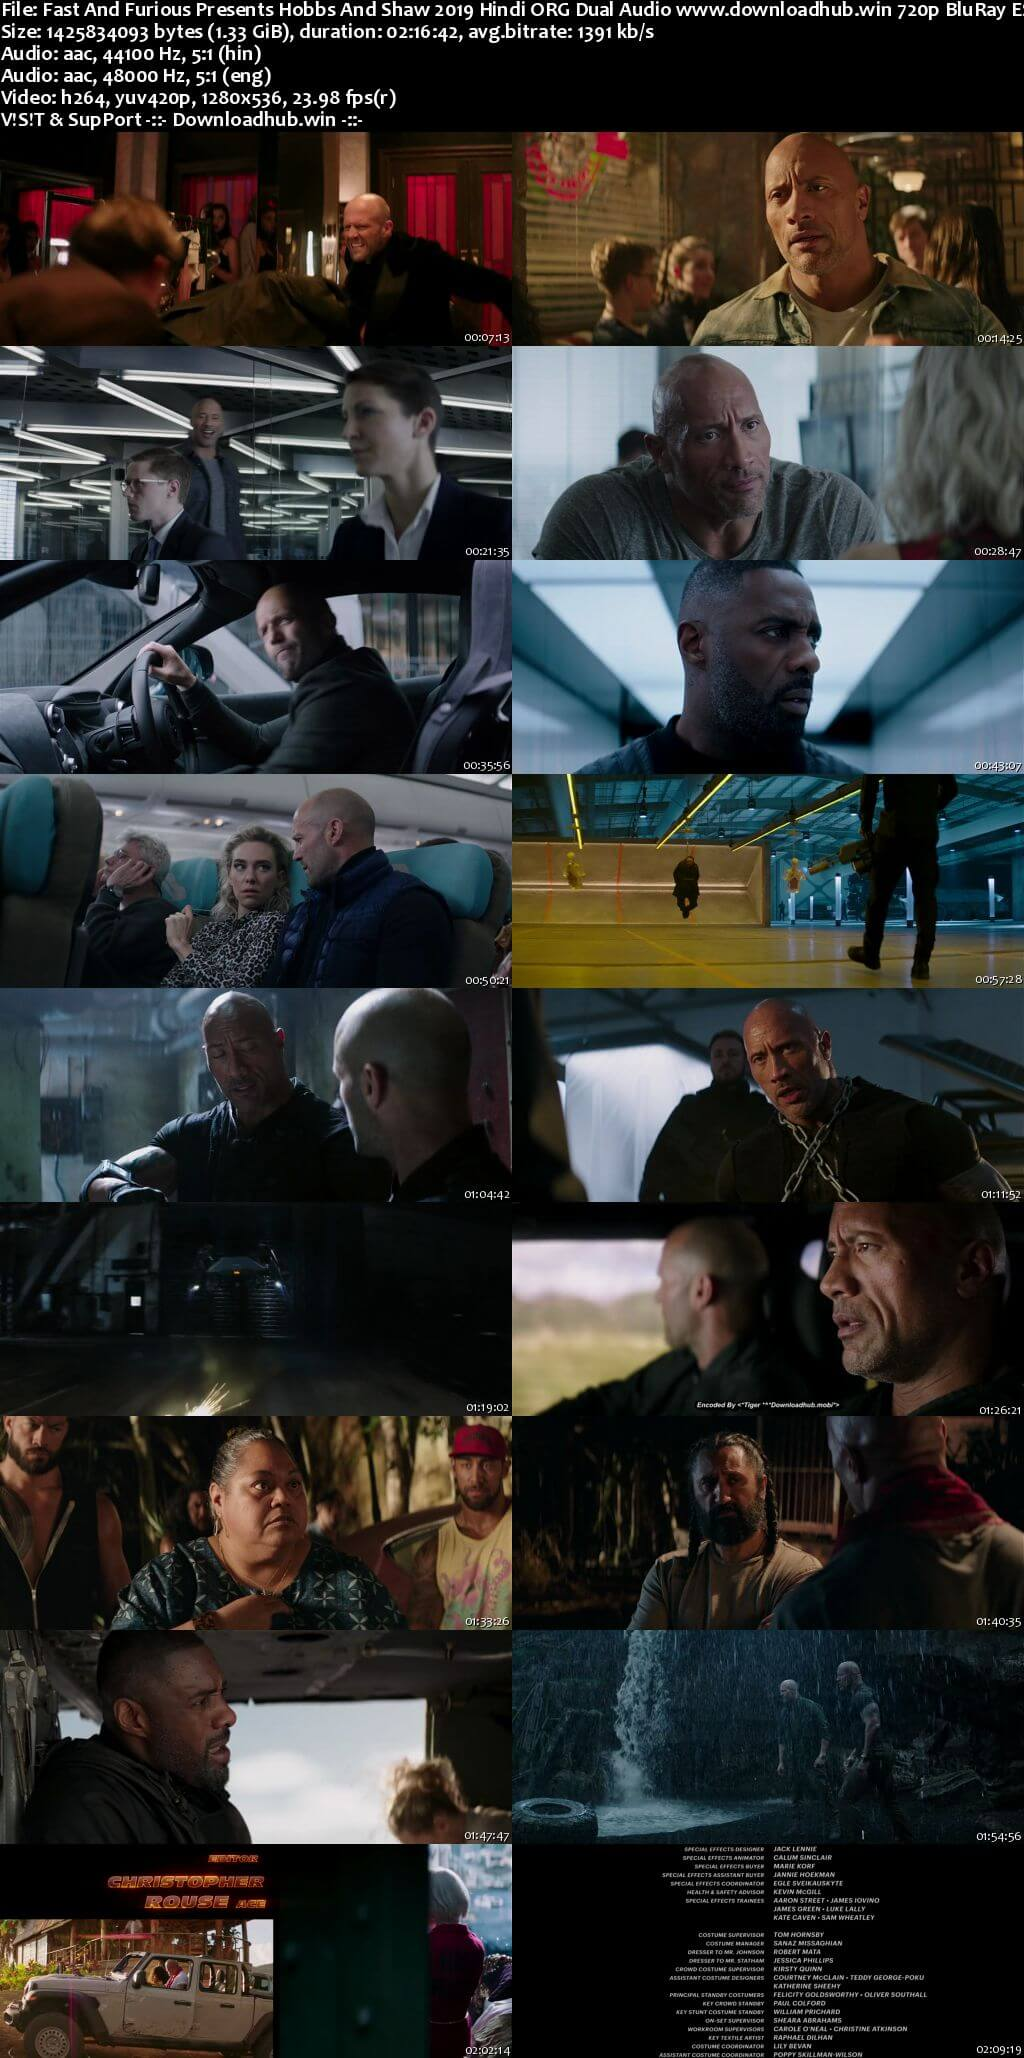 Fast And Furious Presents Hobbs And Shaw 2019 Hindi ORG Dual Audio 720p BluRay ESubs